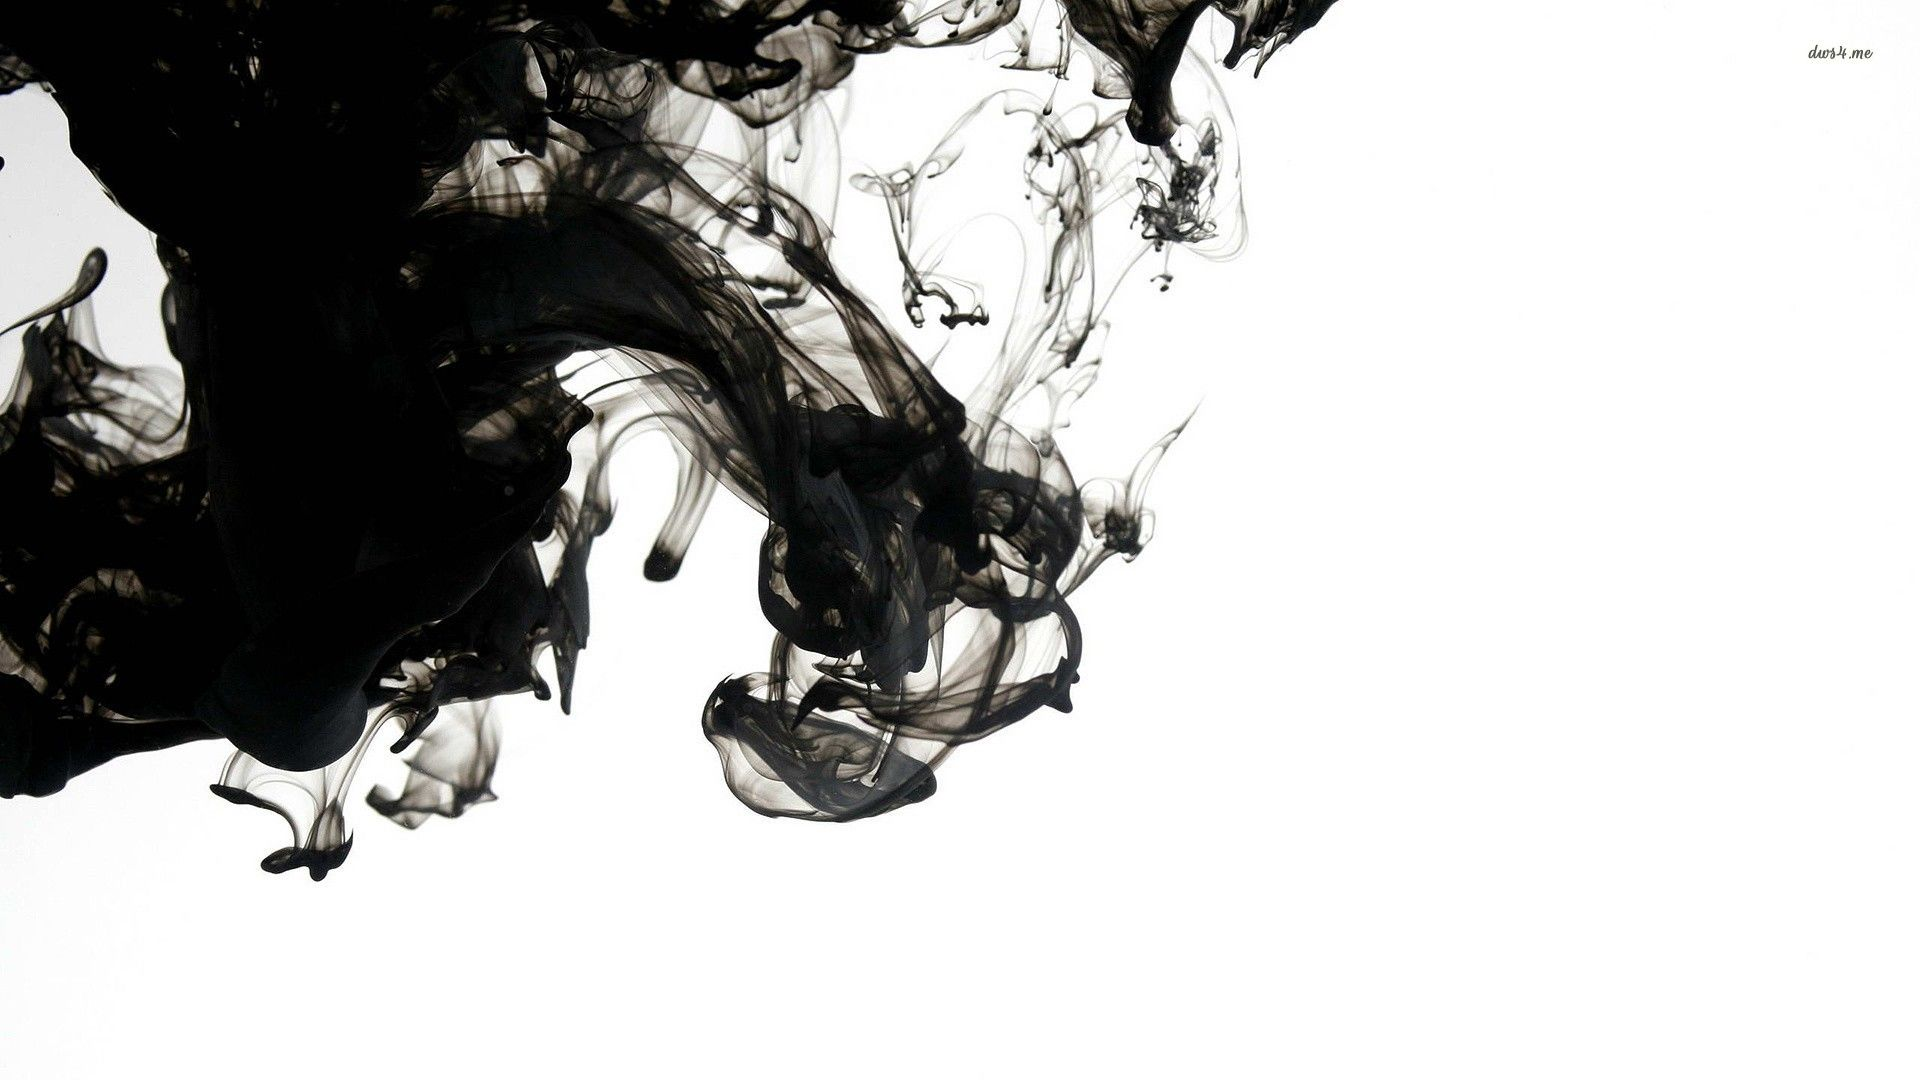 Gold And Black Smoke Wallpaper 11 Cool Hd Wallpaper On Hdblackwallpaper Com Smoke Wallpaper Black And White Abstract Abstract